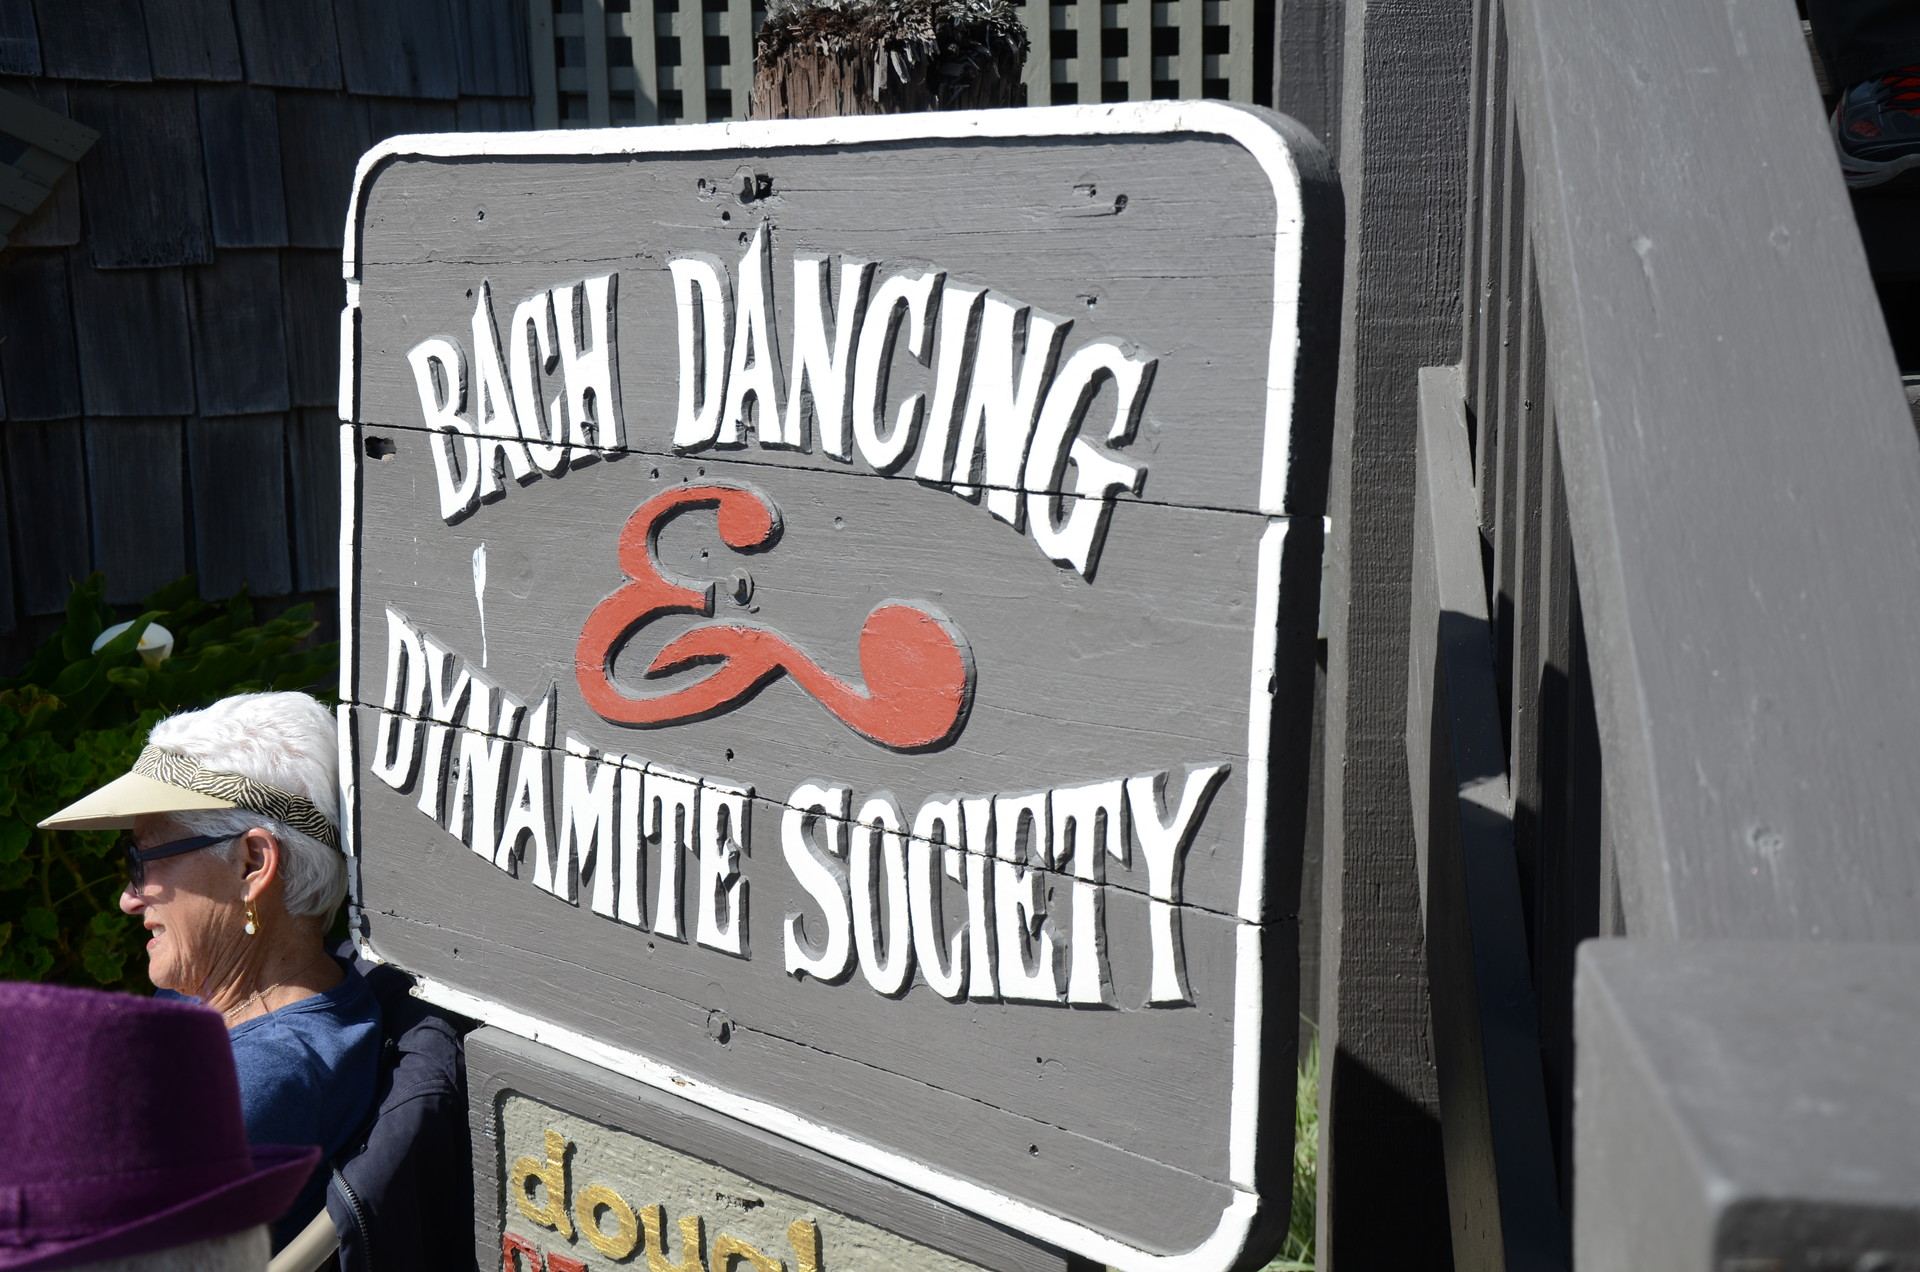 The Bach Dancing and Dynamite Society in Half Moon Bay grew out of the impromptu jazz concerts Pete Douglas would throw in his living room.